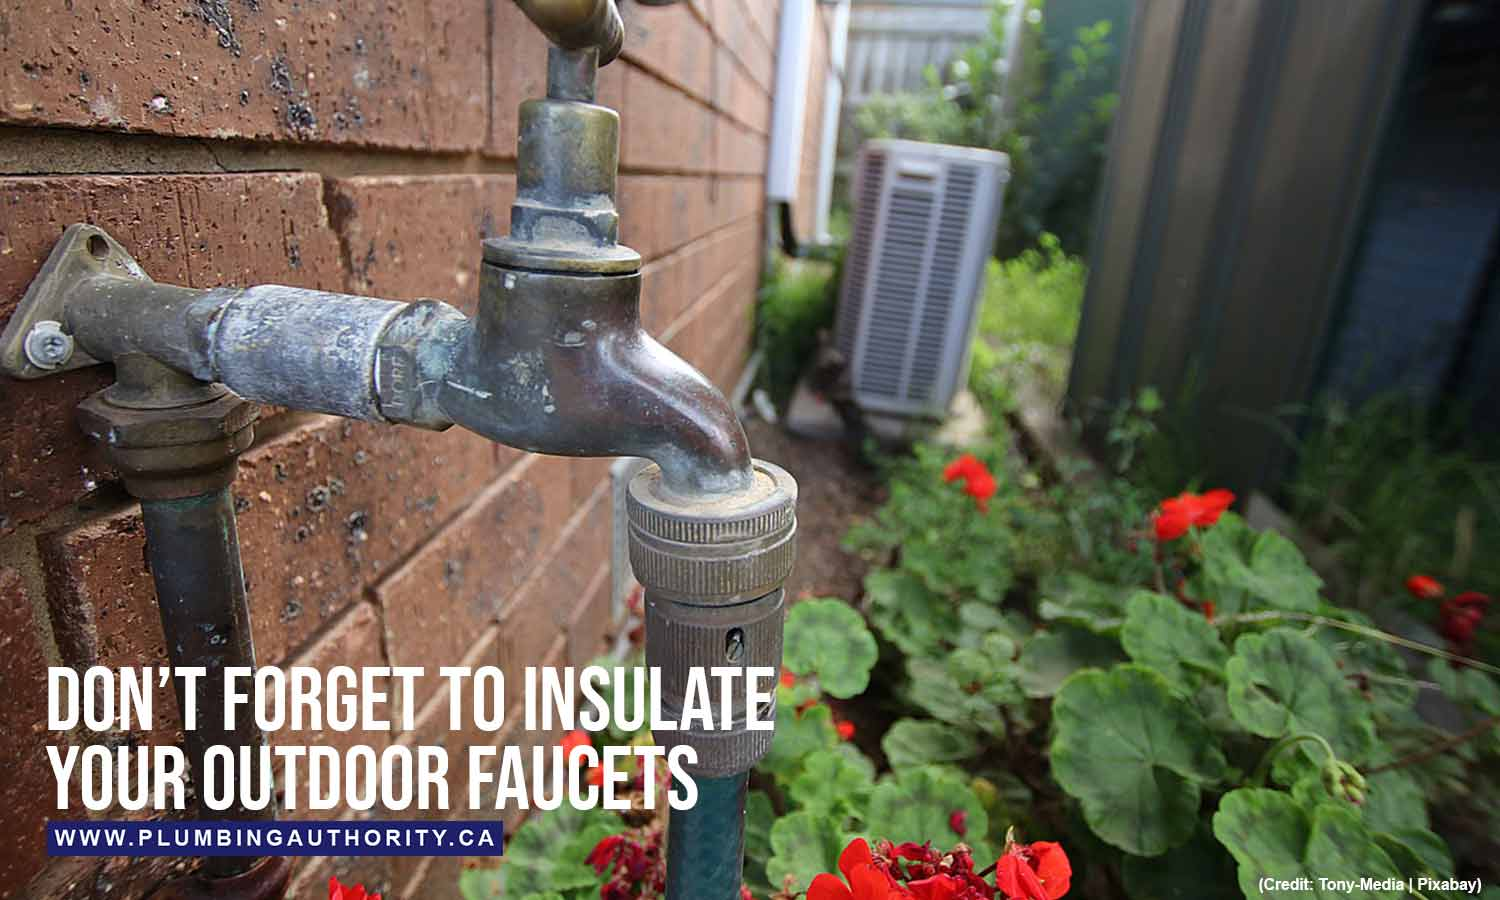 Don't forget to insulate your outdoor faucets